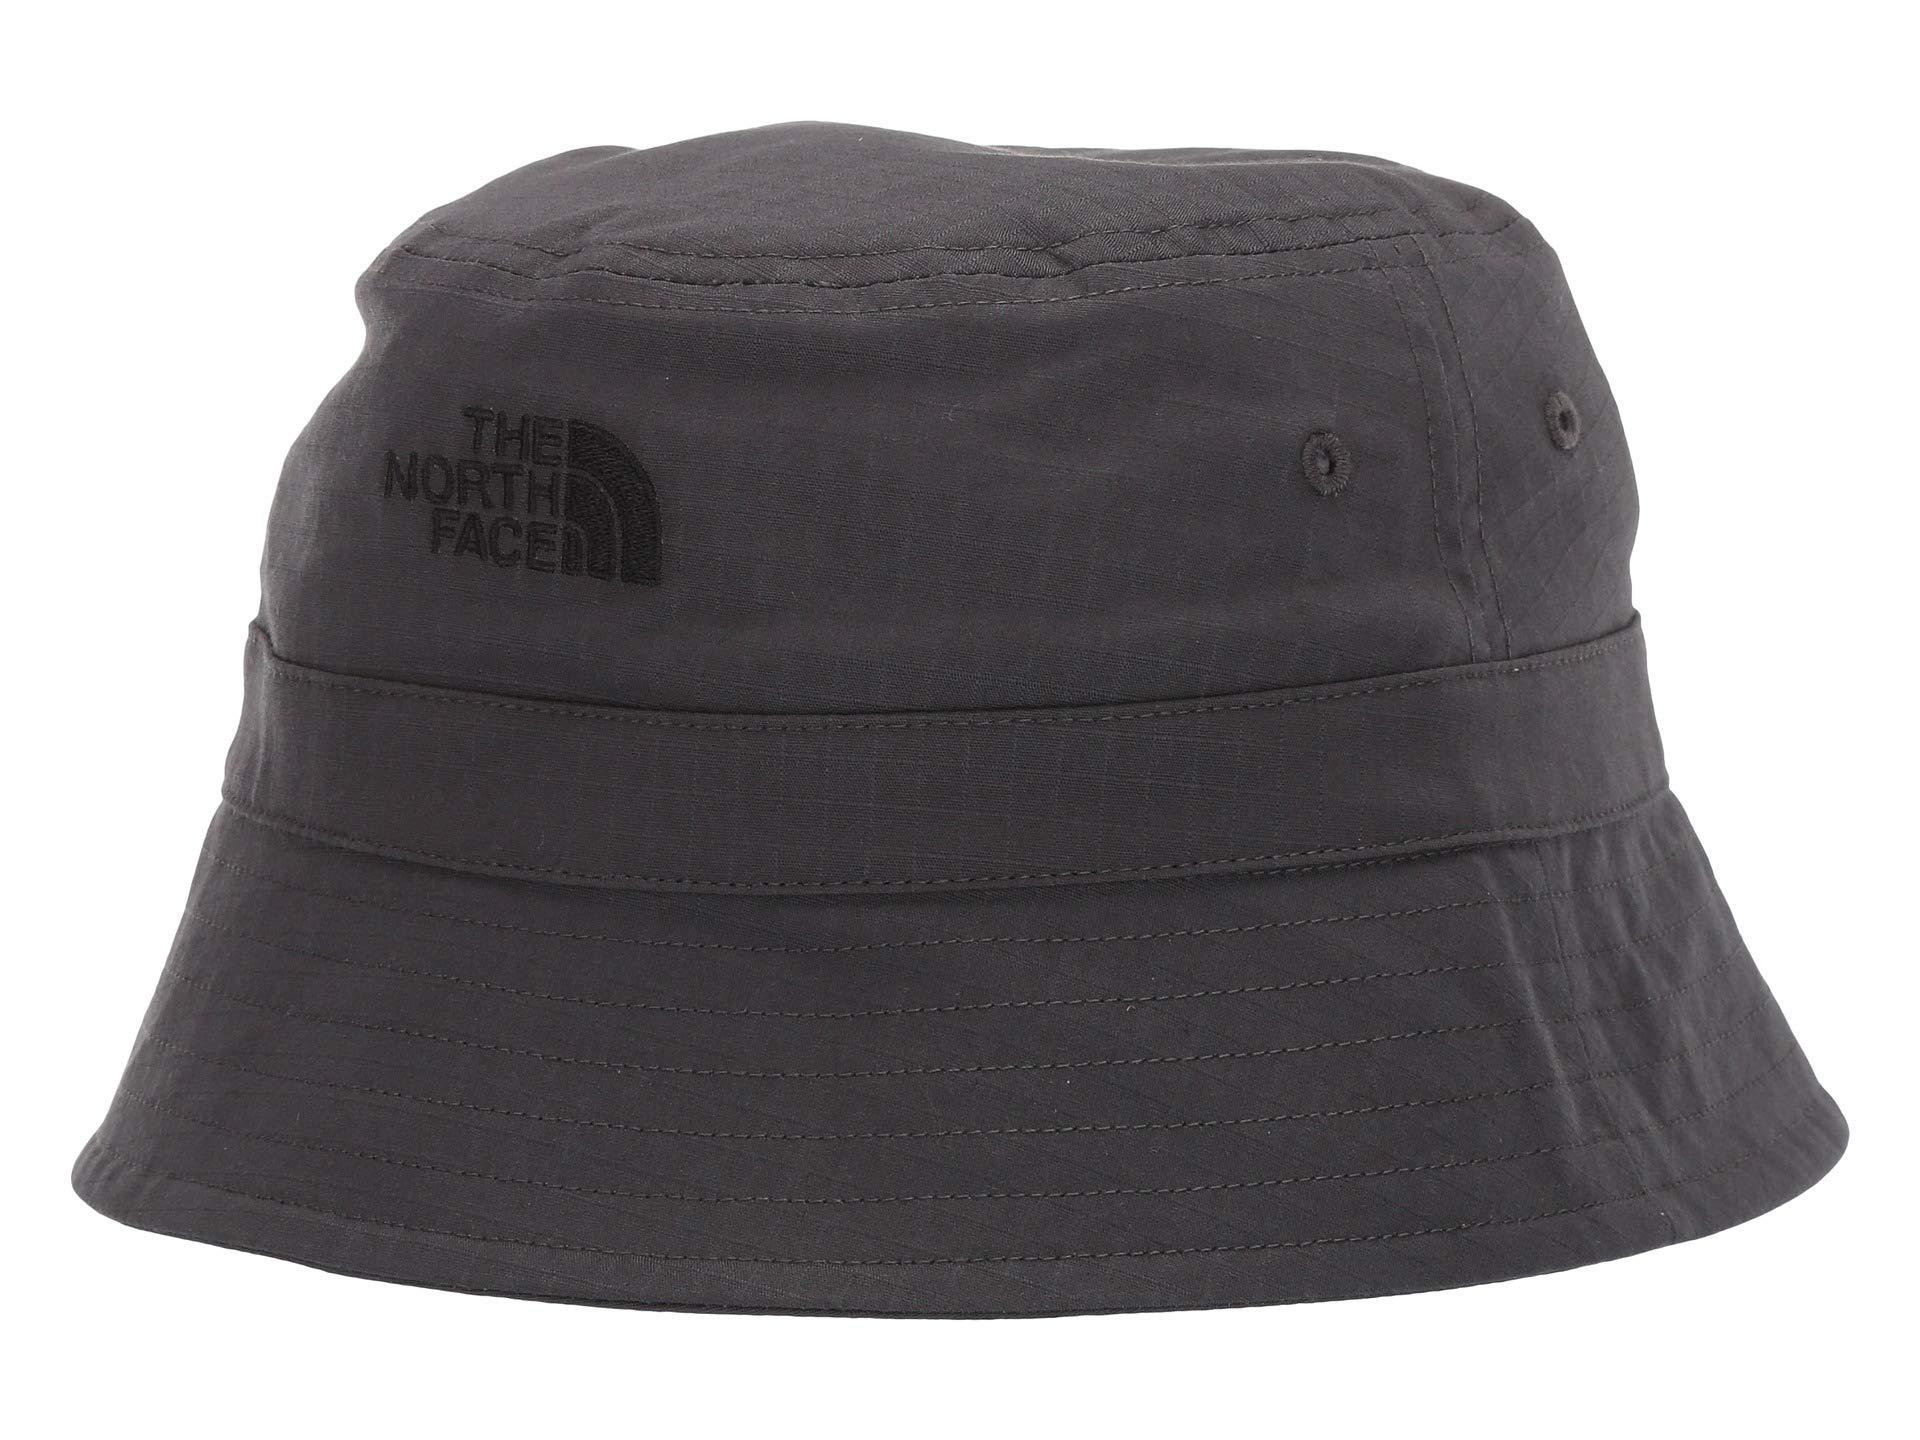 aa97ebec The North Face Cotton Bucket Hat (kelp Tan) Bucket Caps in Gray for ...